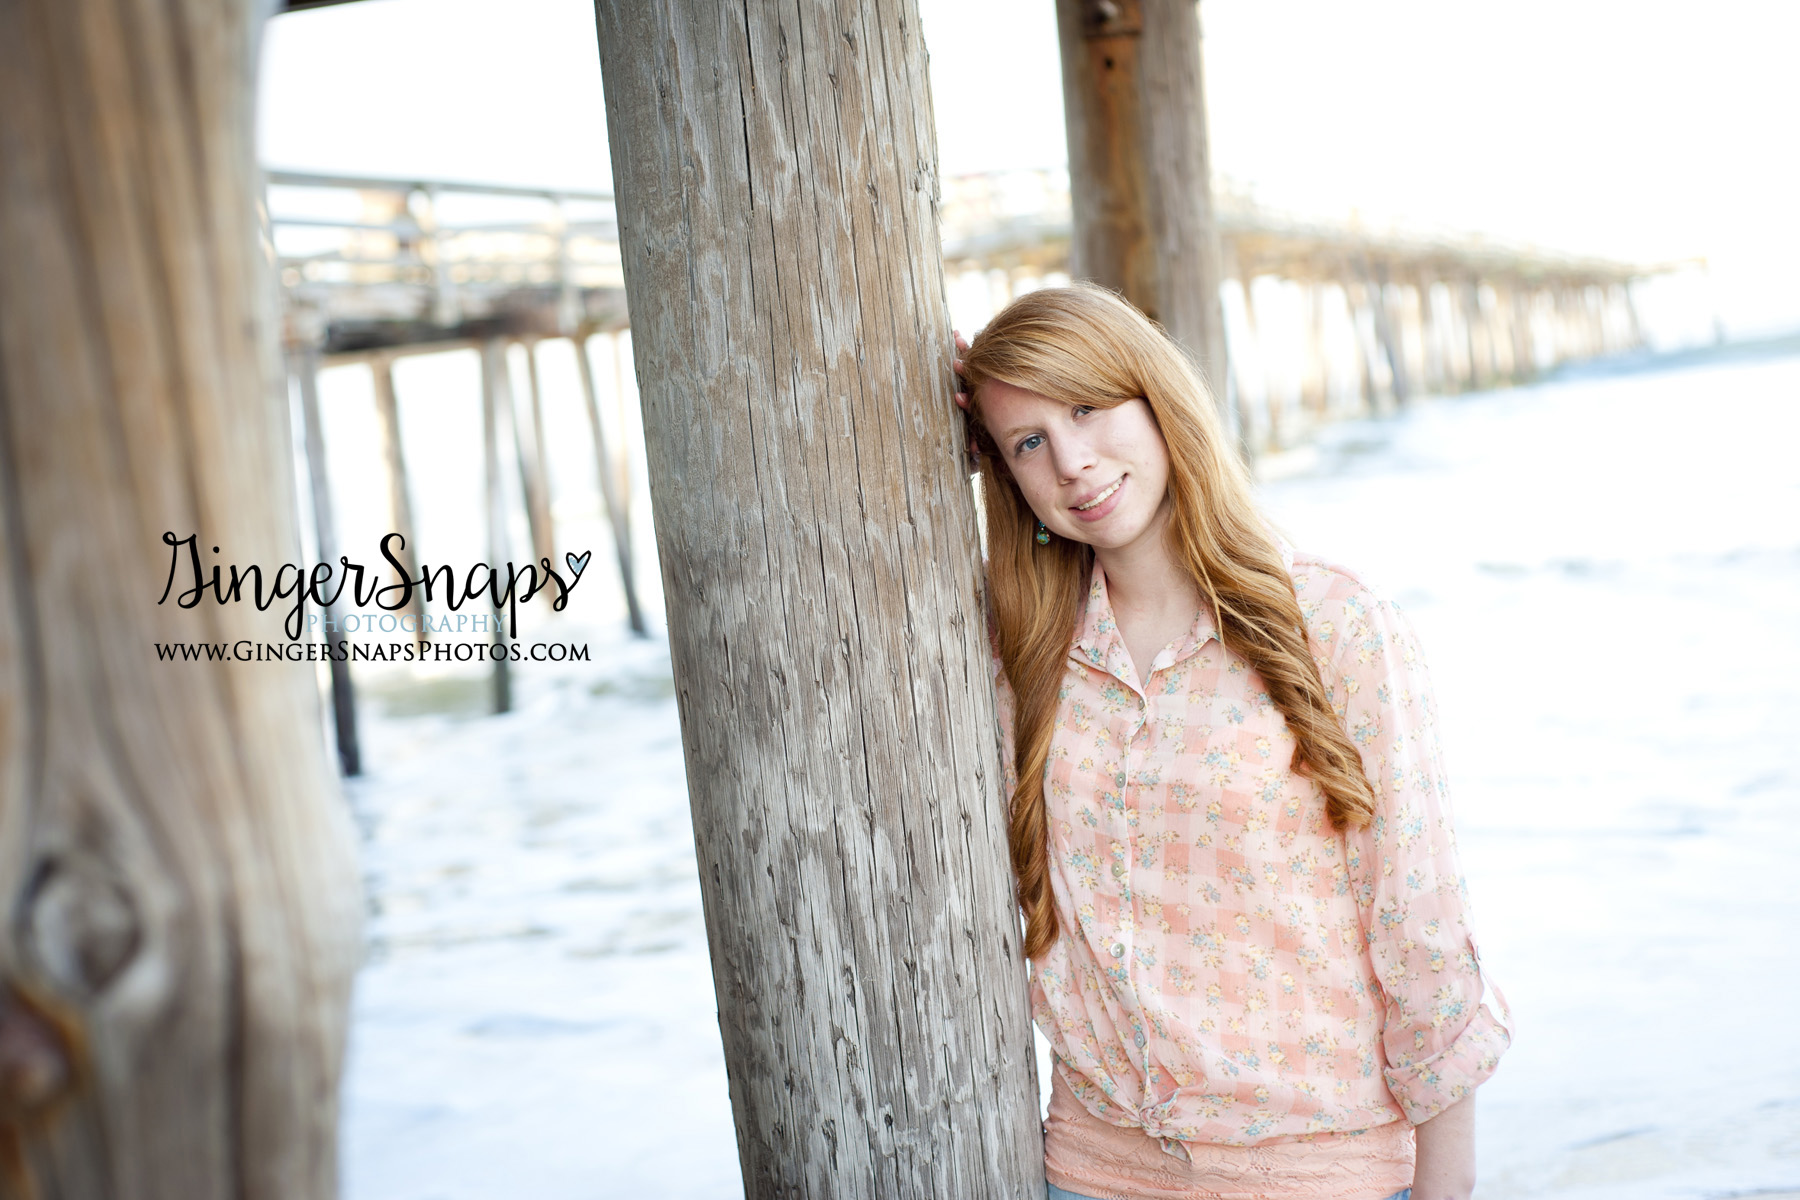 GingerSnaps Photography - 06.jpg